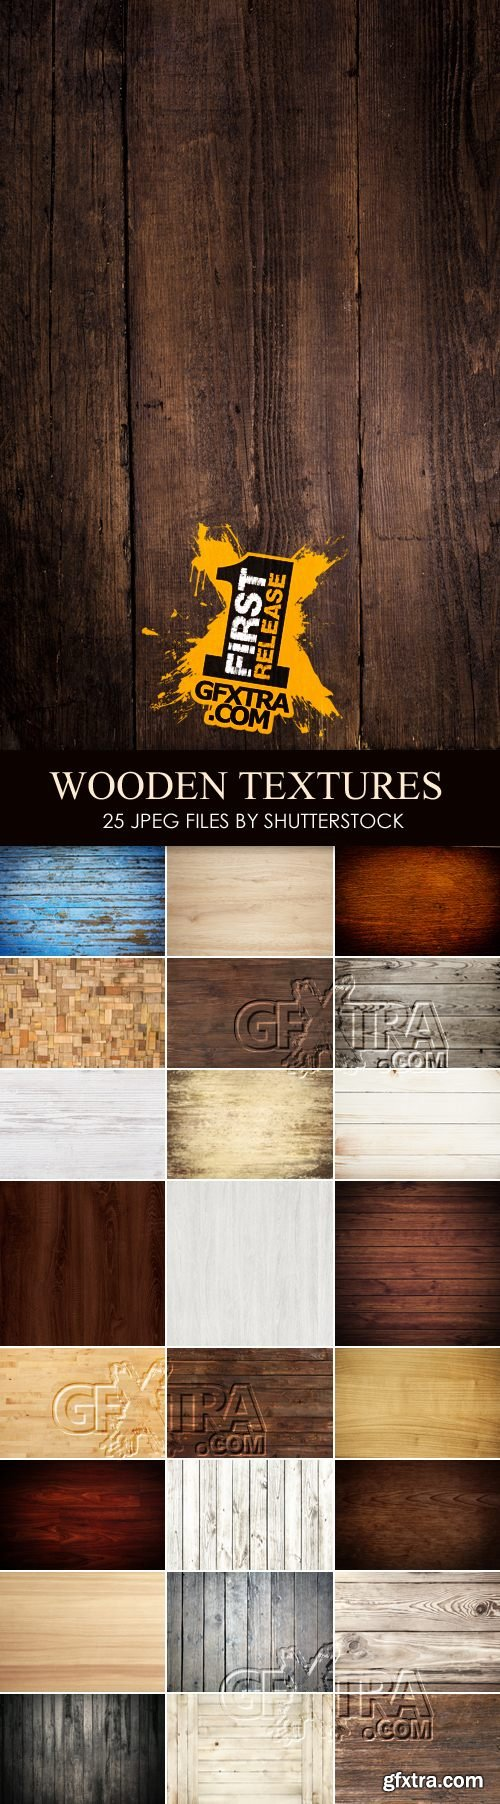 Stock Photo - High Quality Wooden Textures